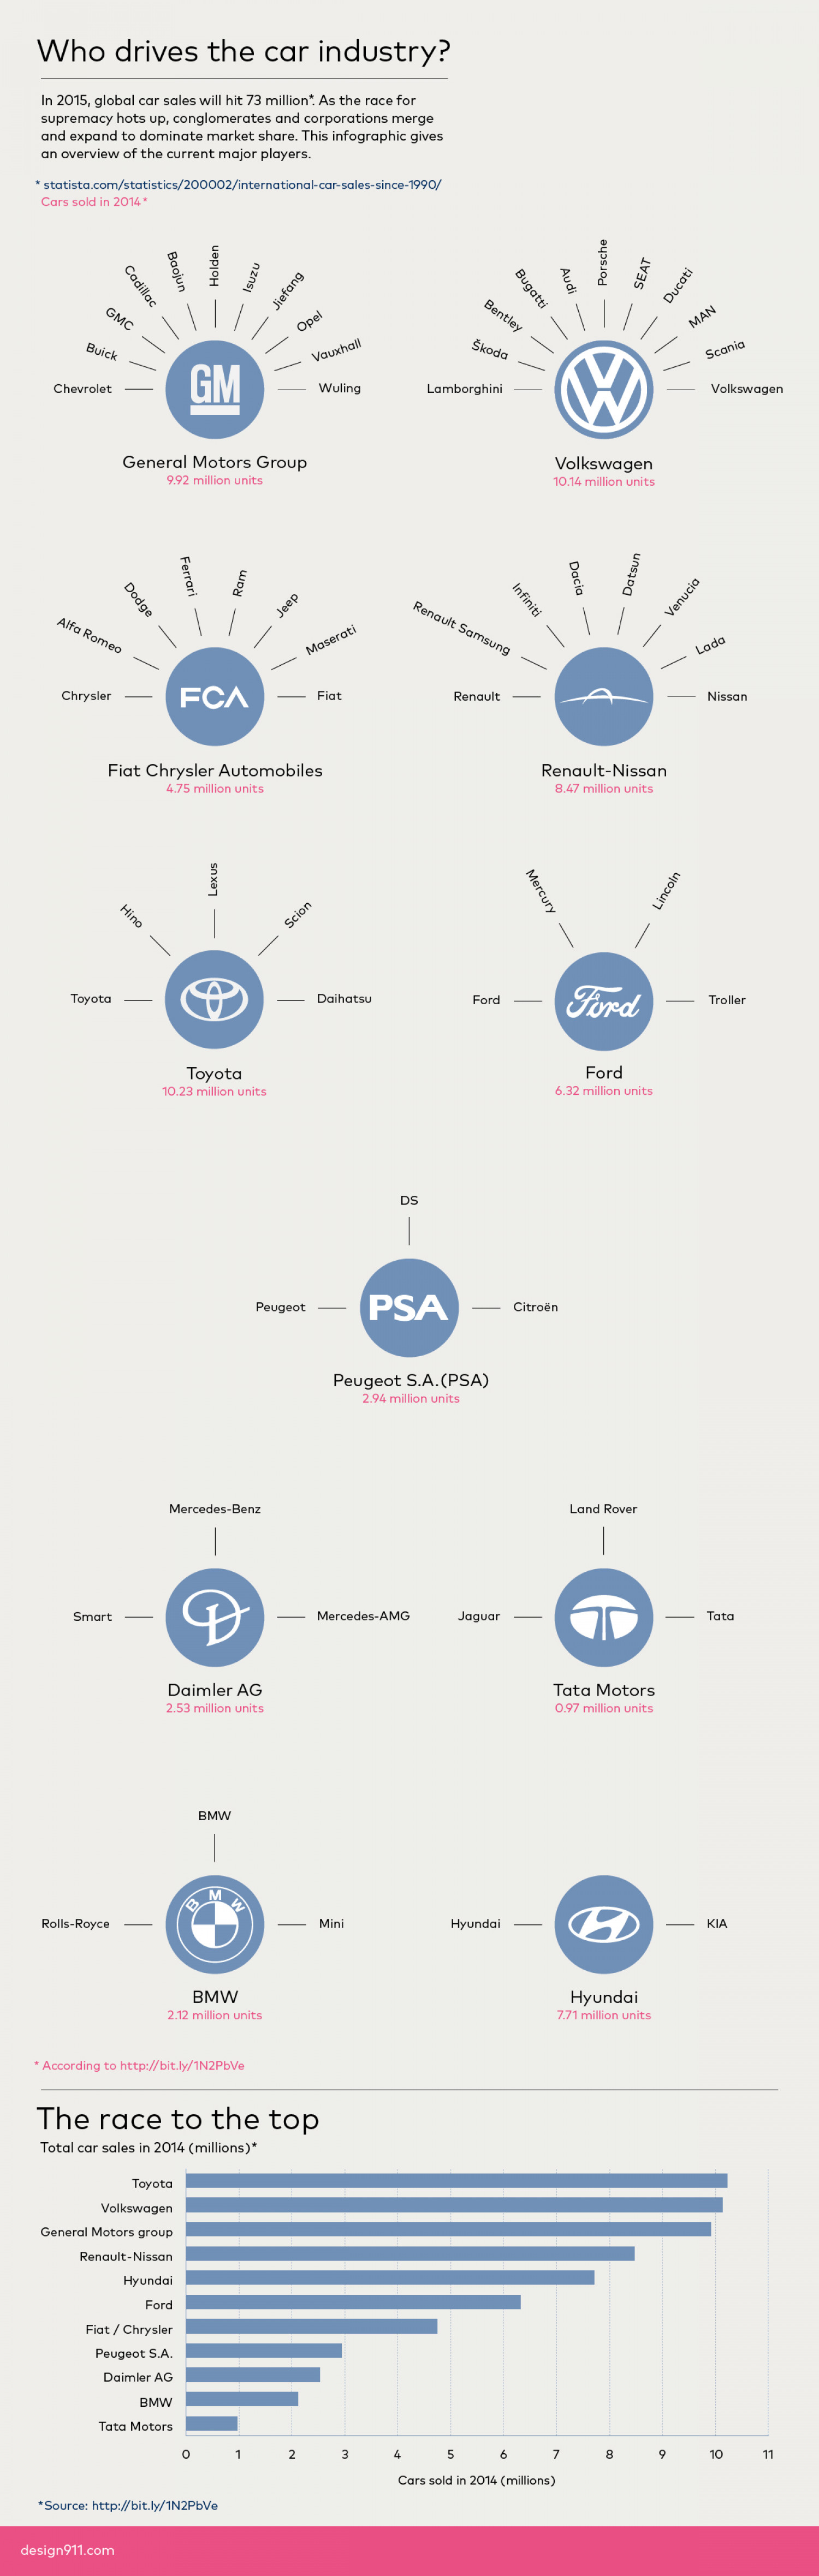 Car industry conglomerates – The race to the top Infographic